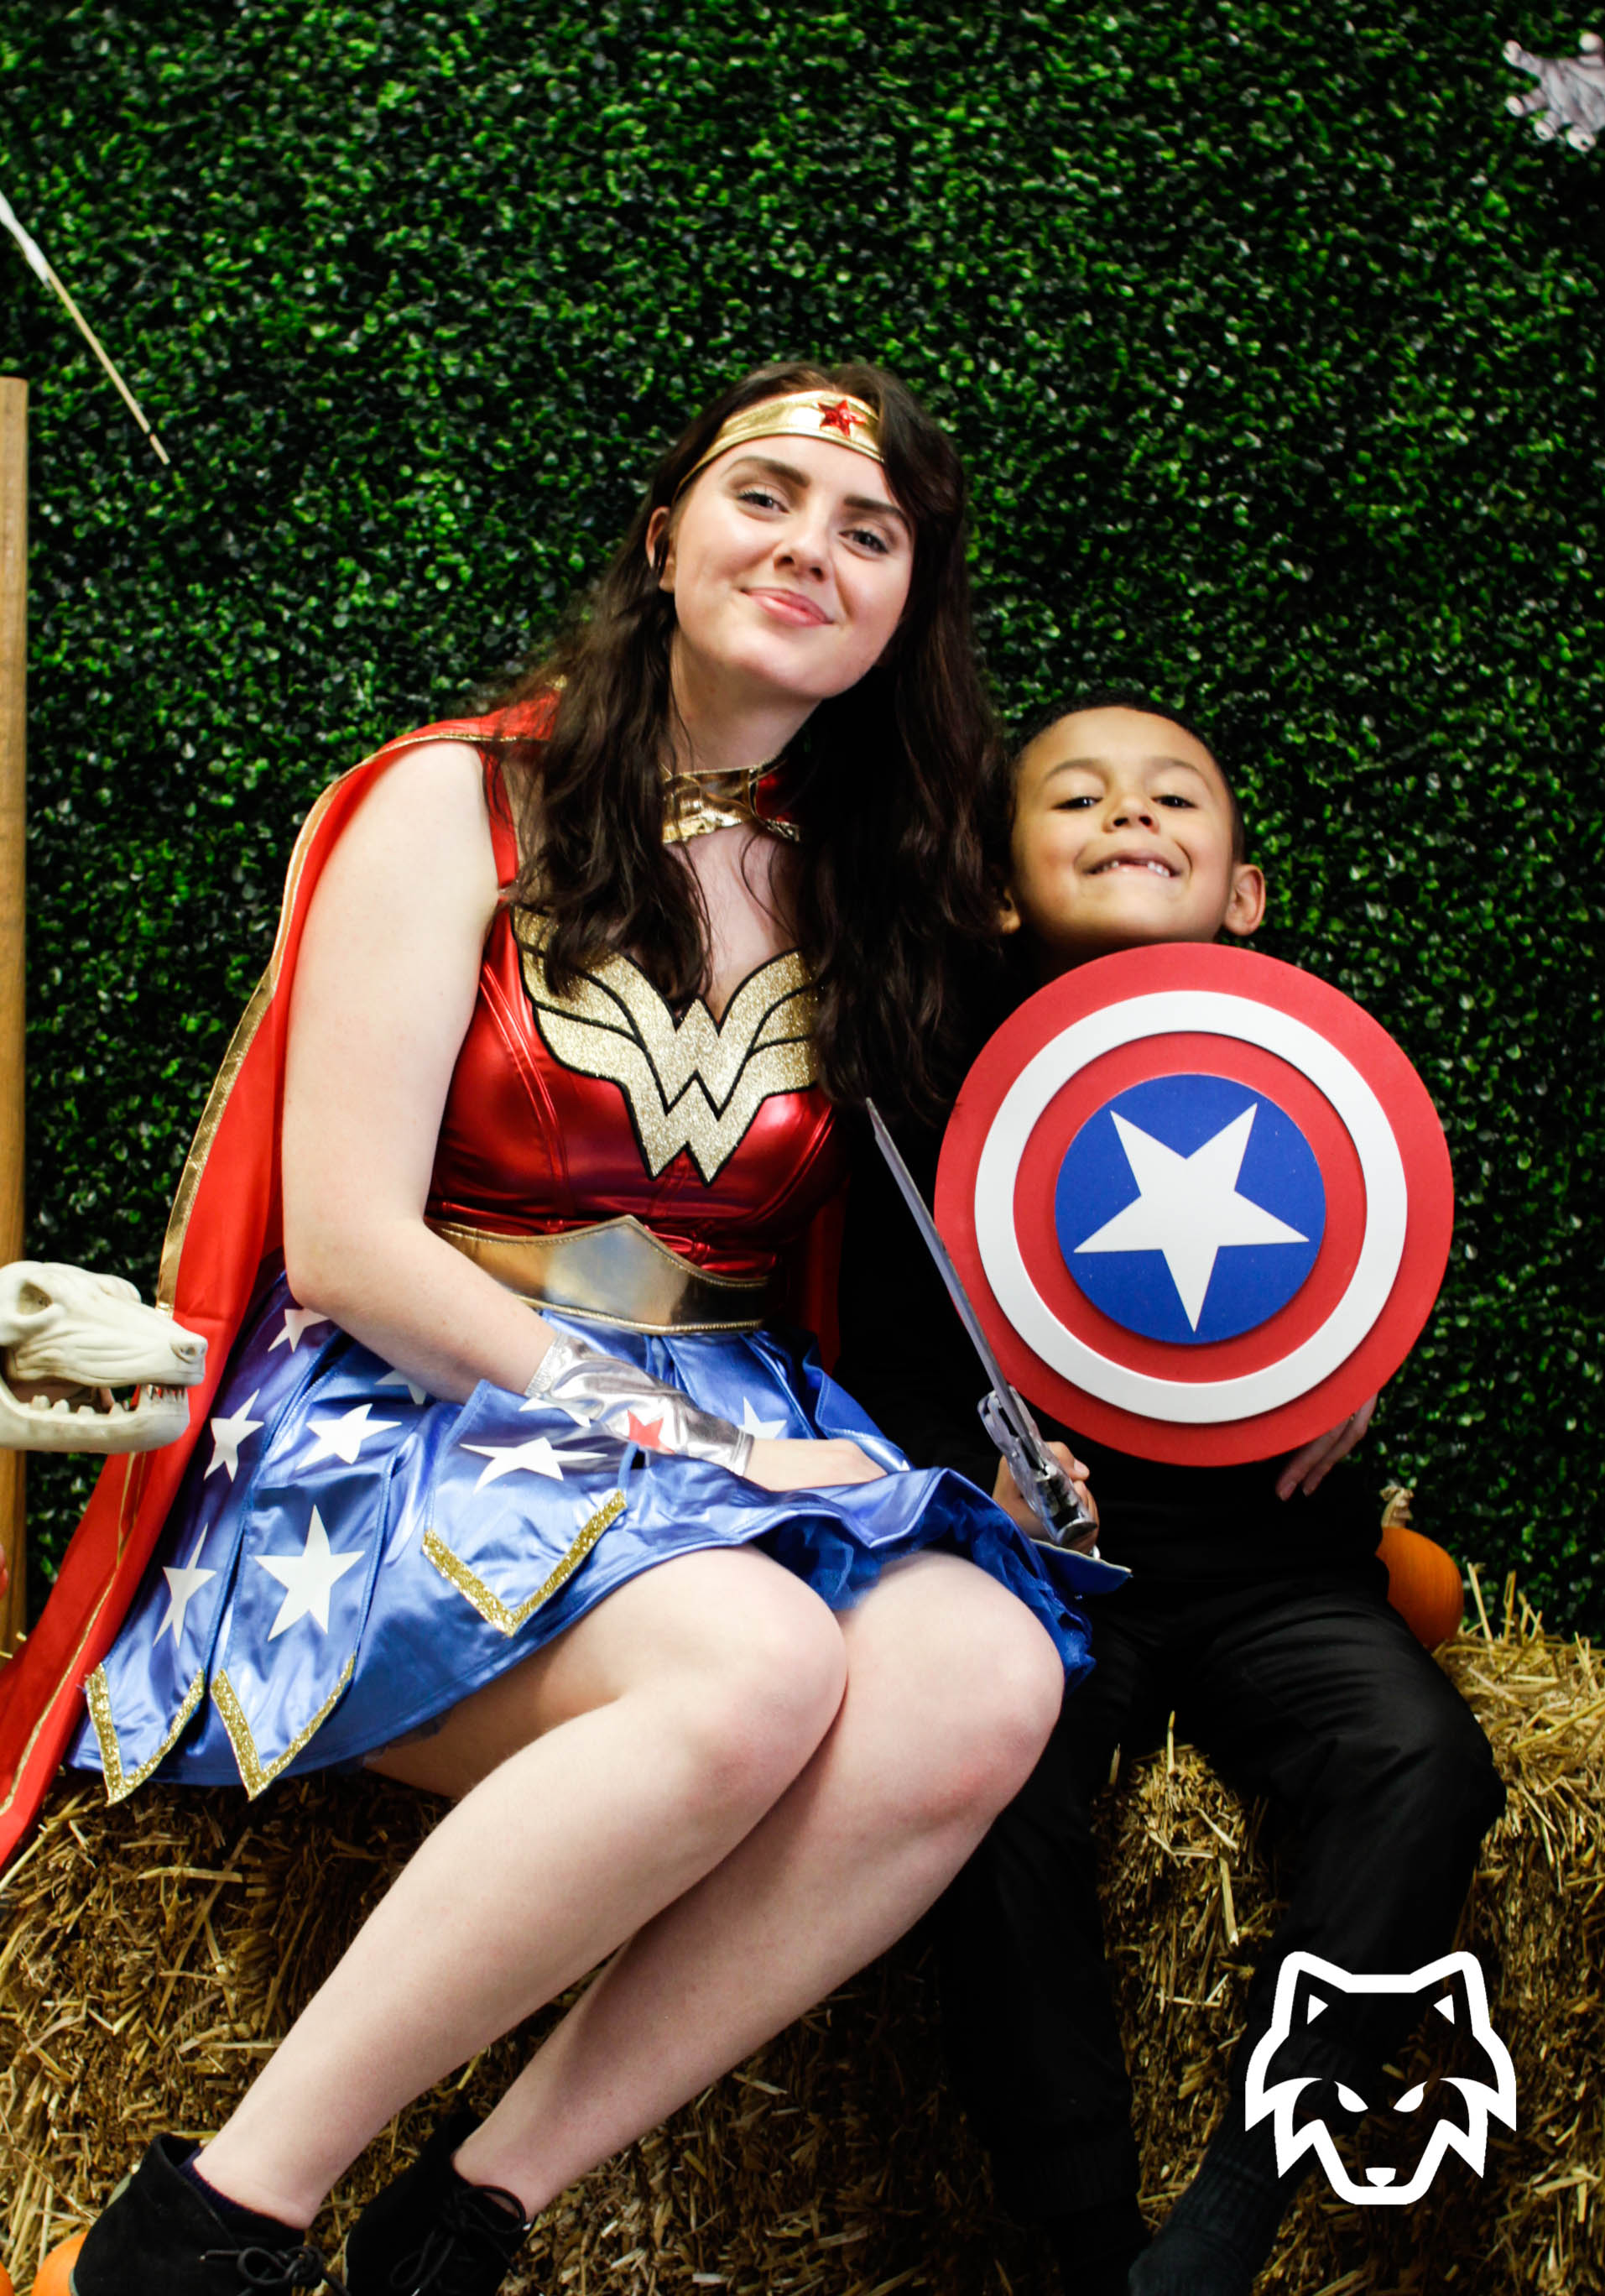 Wonderwoman-Captain-America-Costume